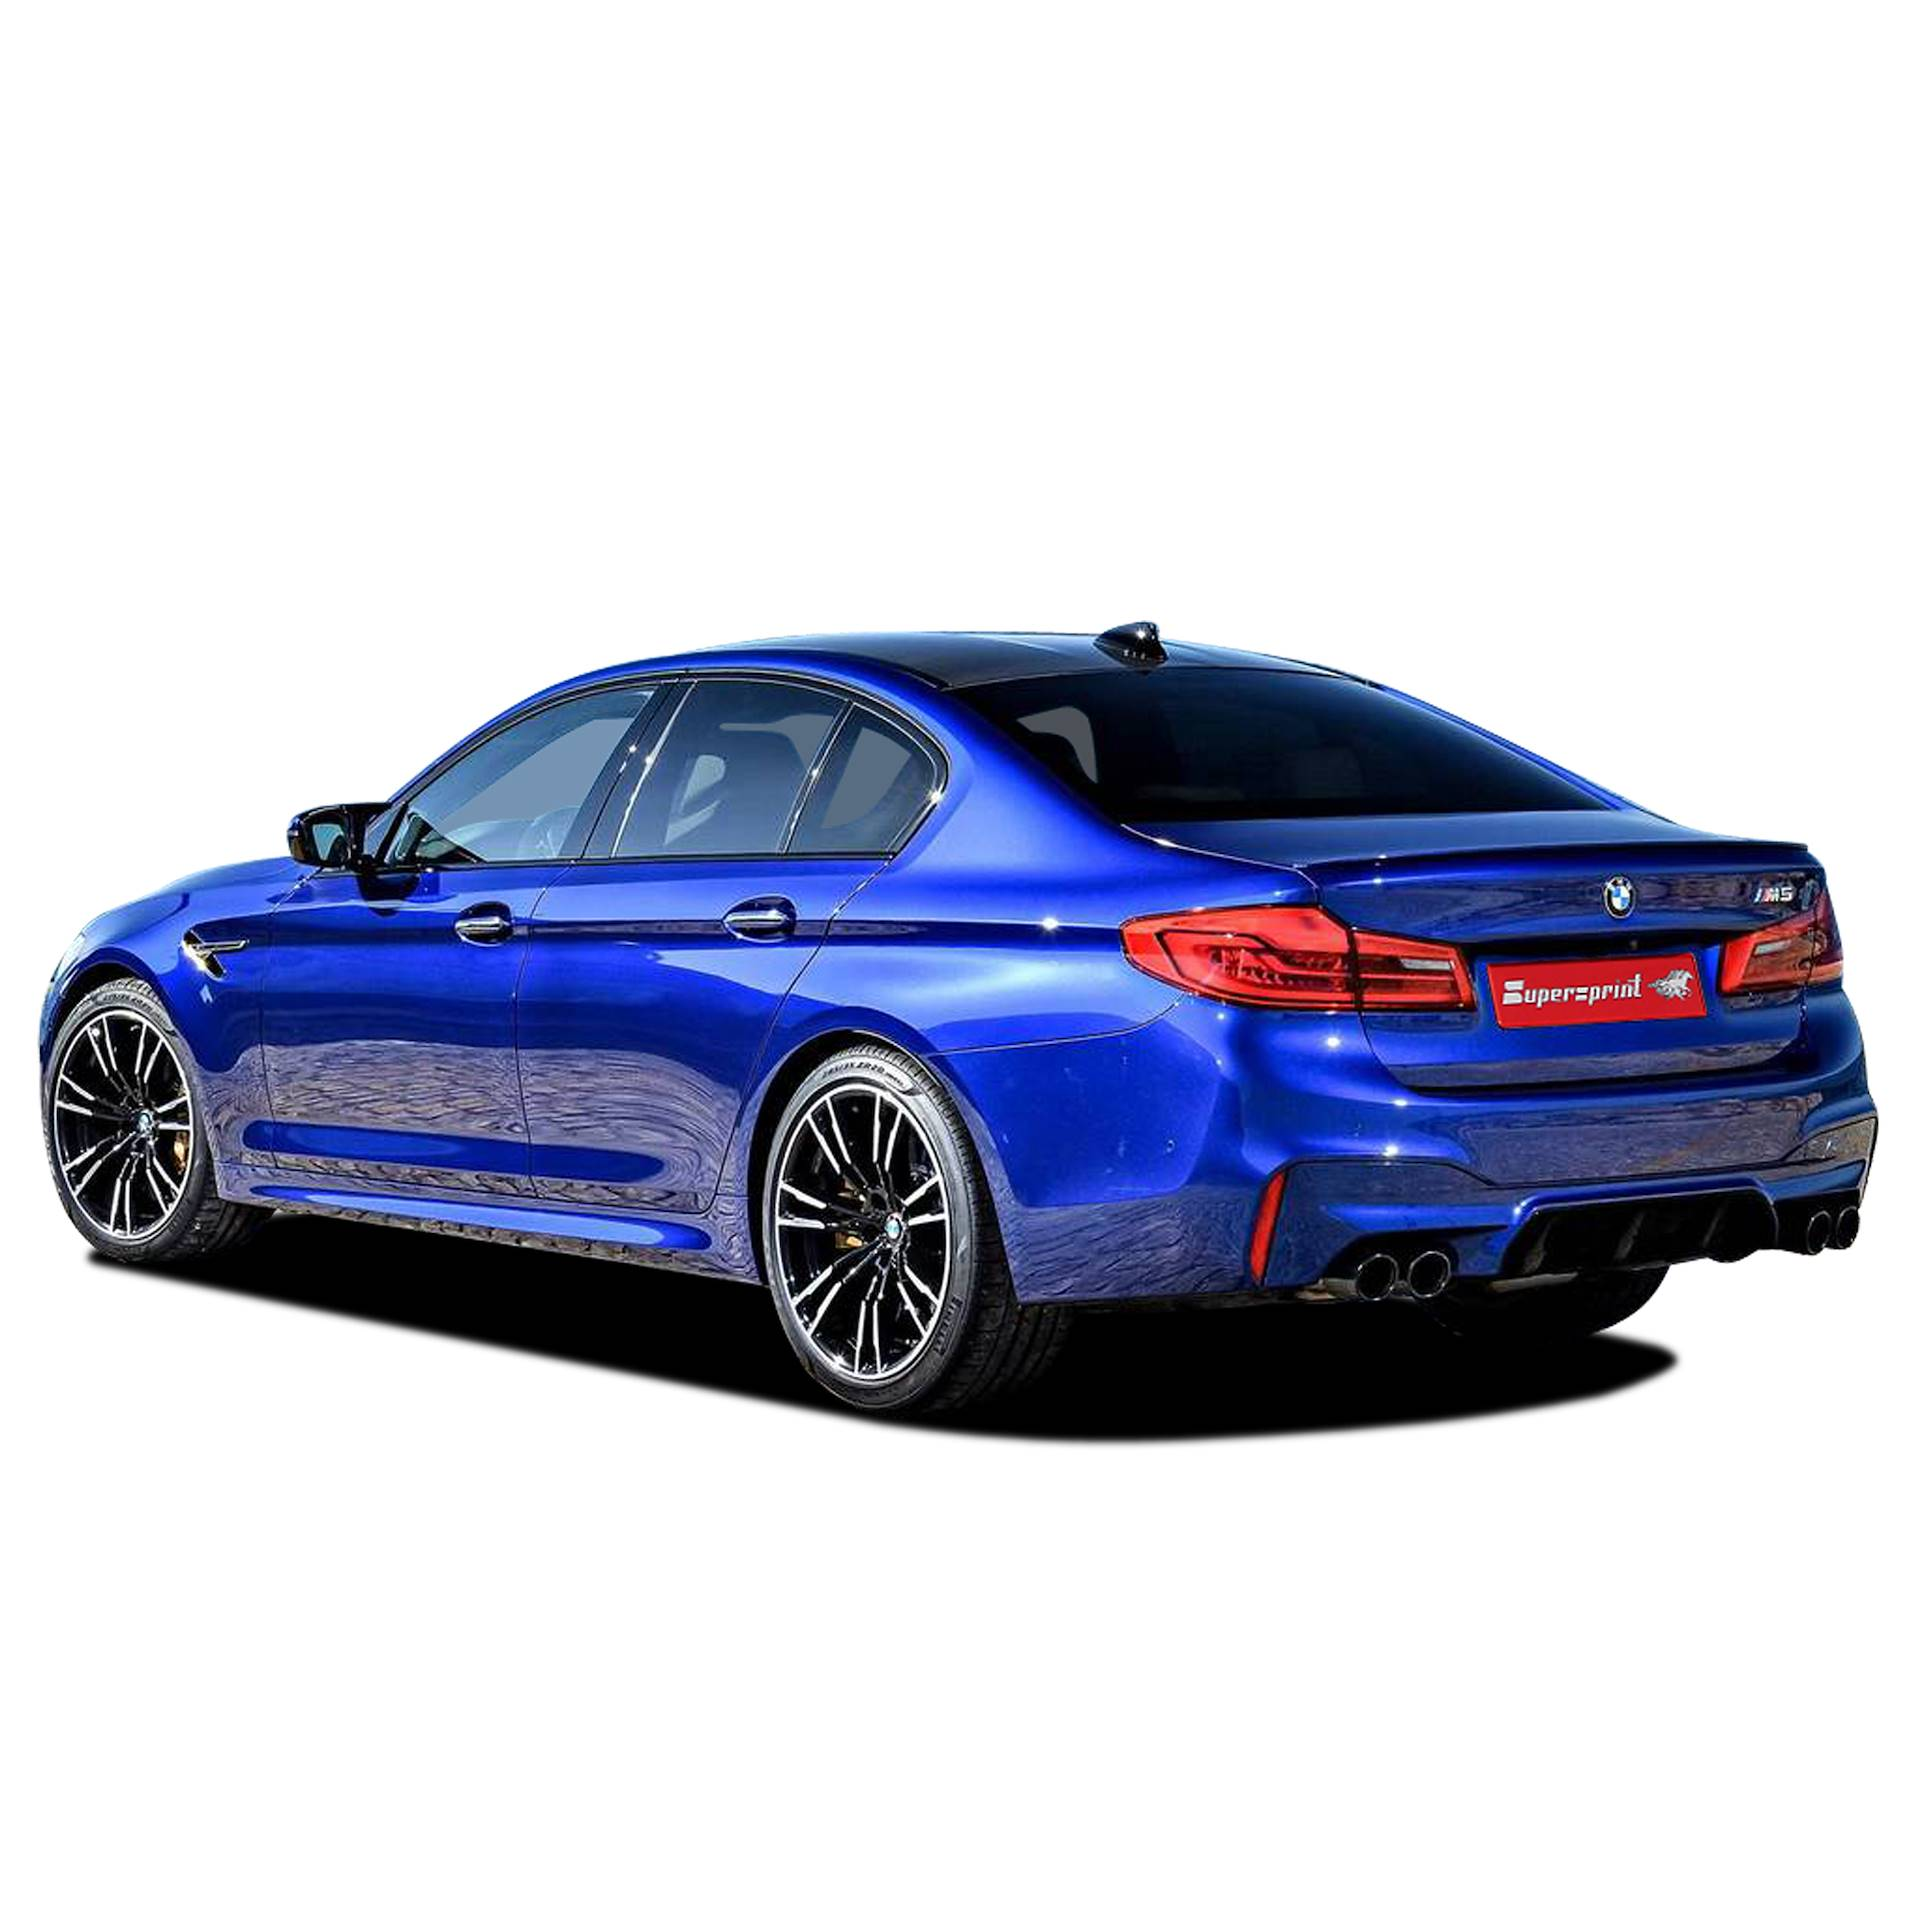 performance exhaust systems, performance racing exhaust systems